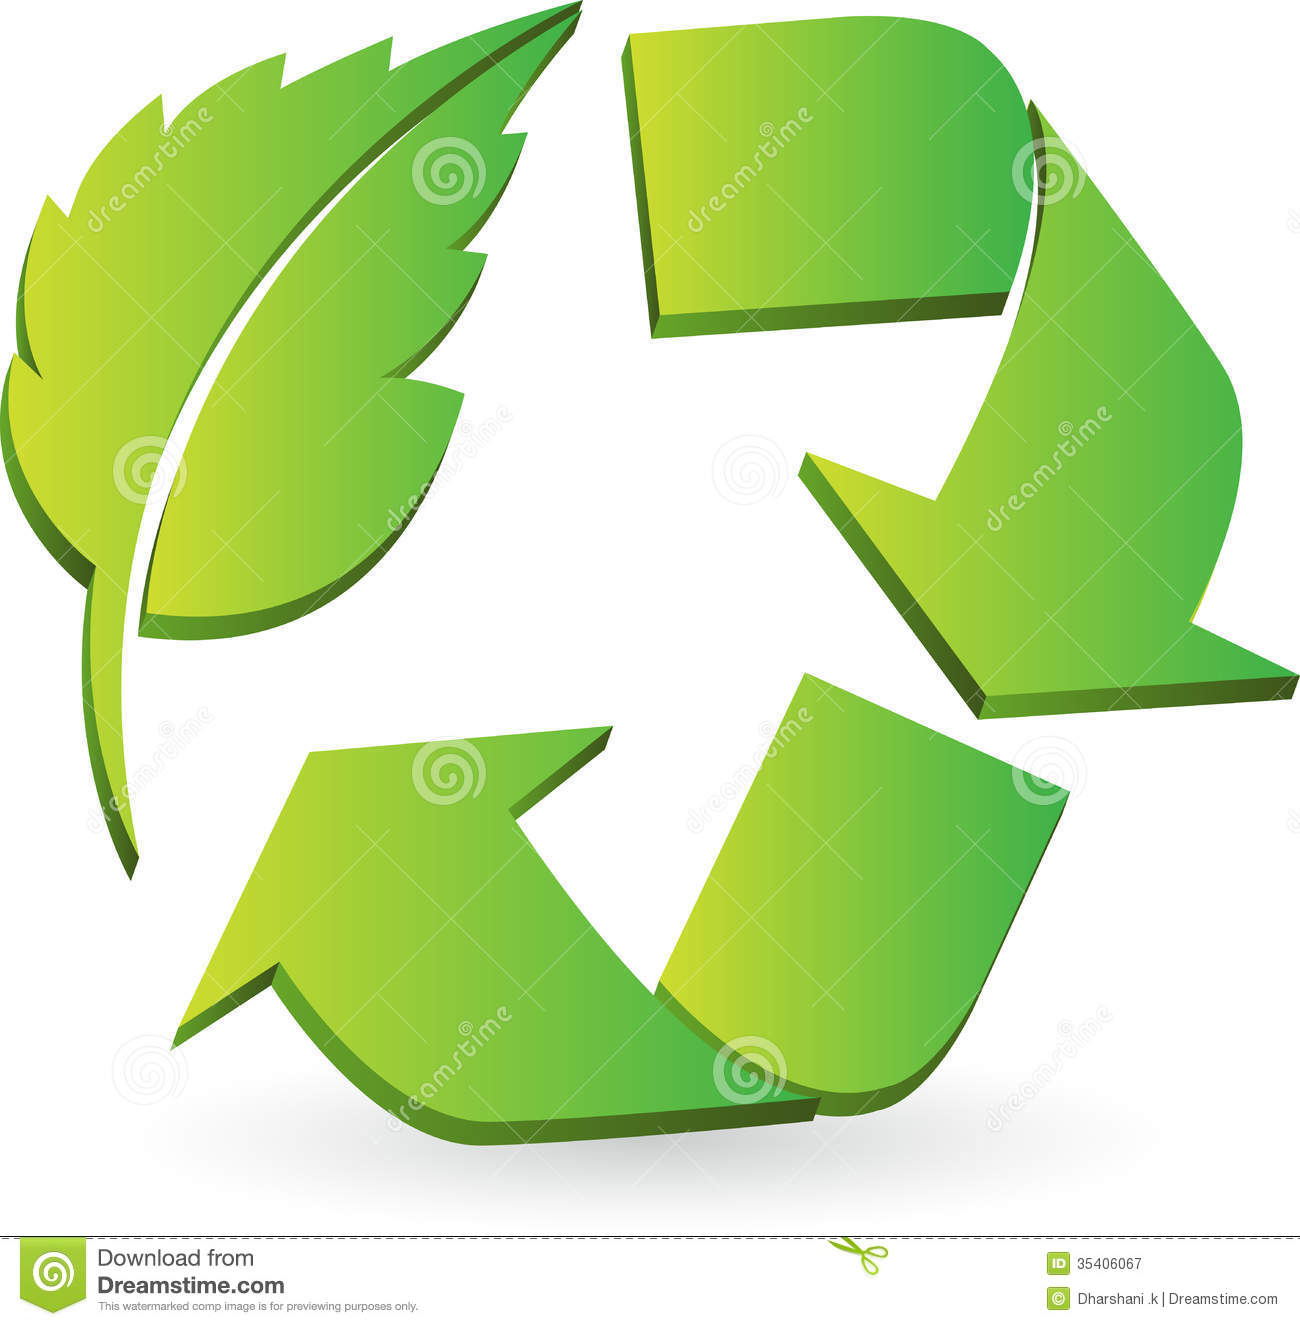 Eco Recycle Logo Stock Vector Illustration Of Ecology 35406067